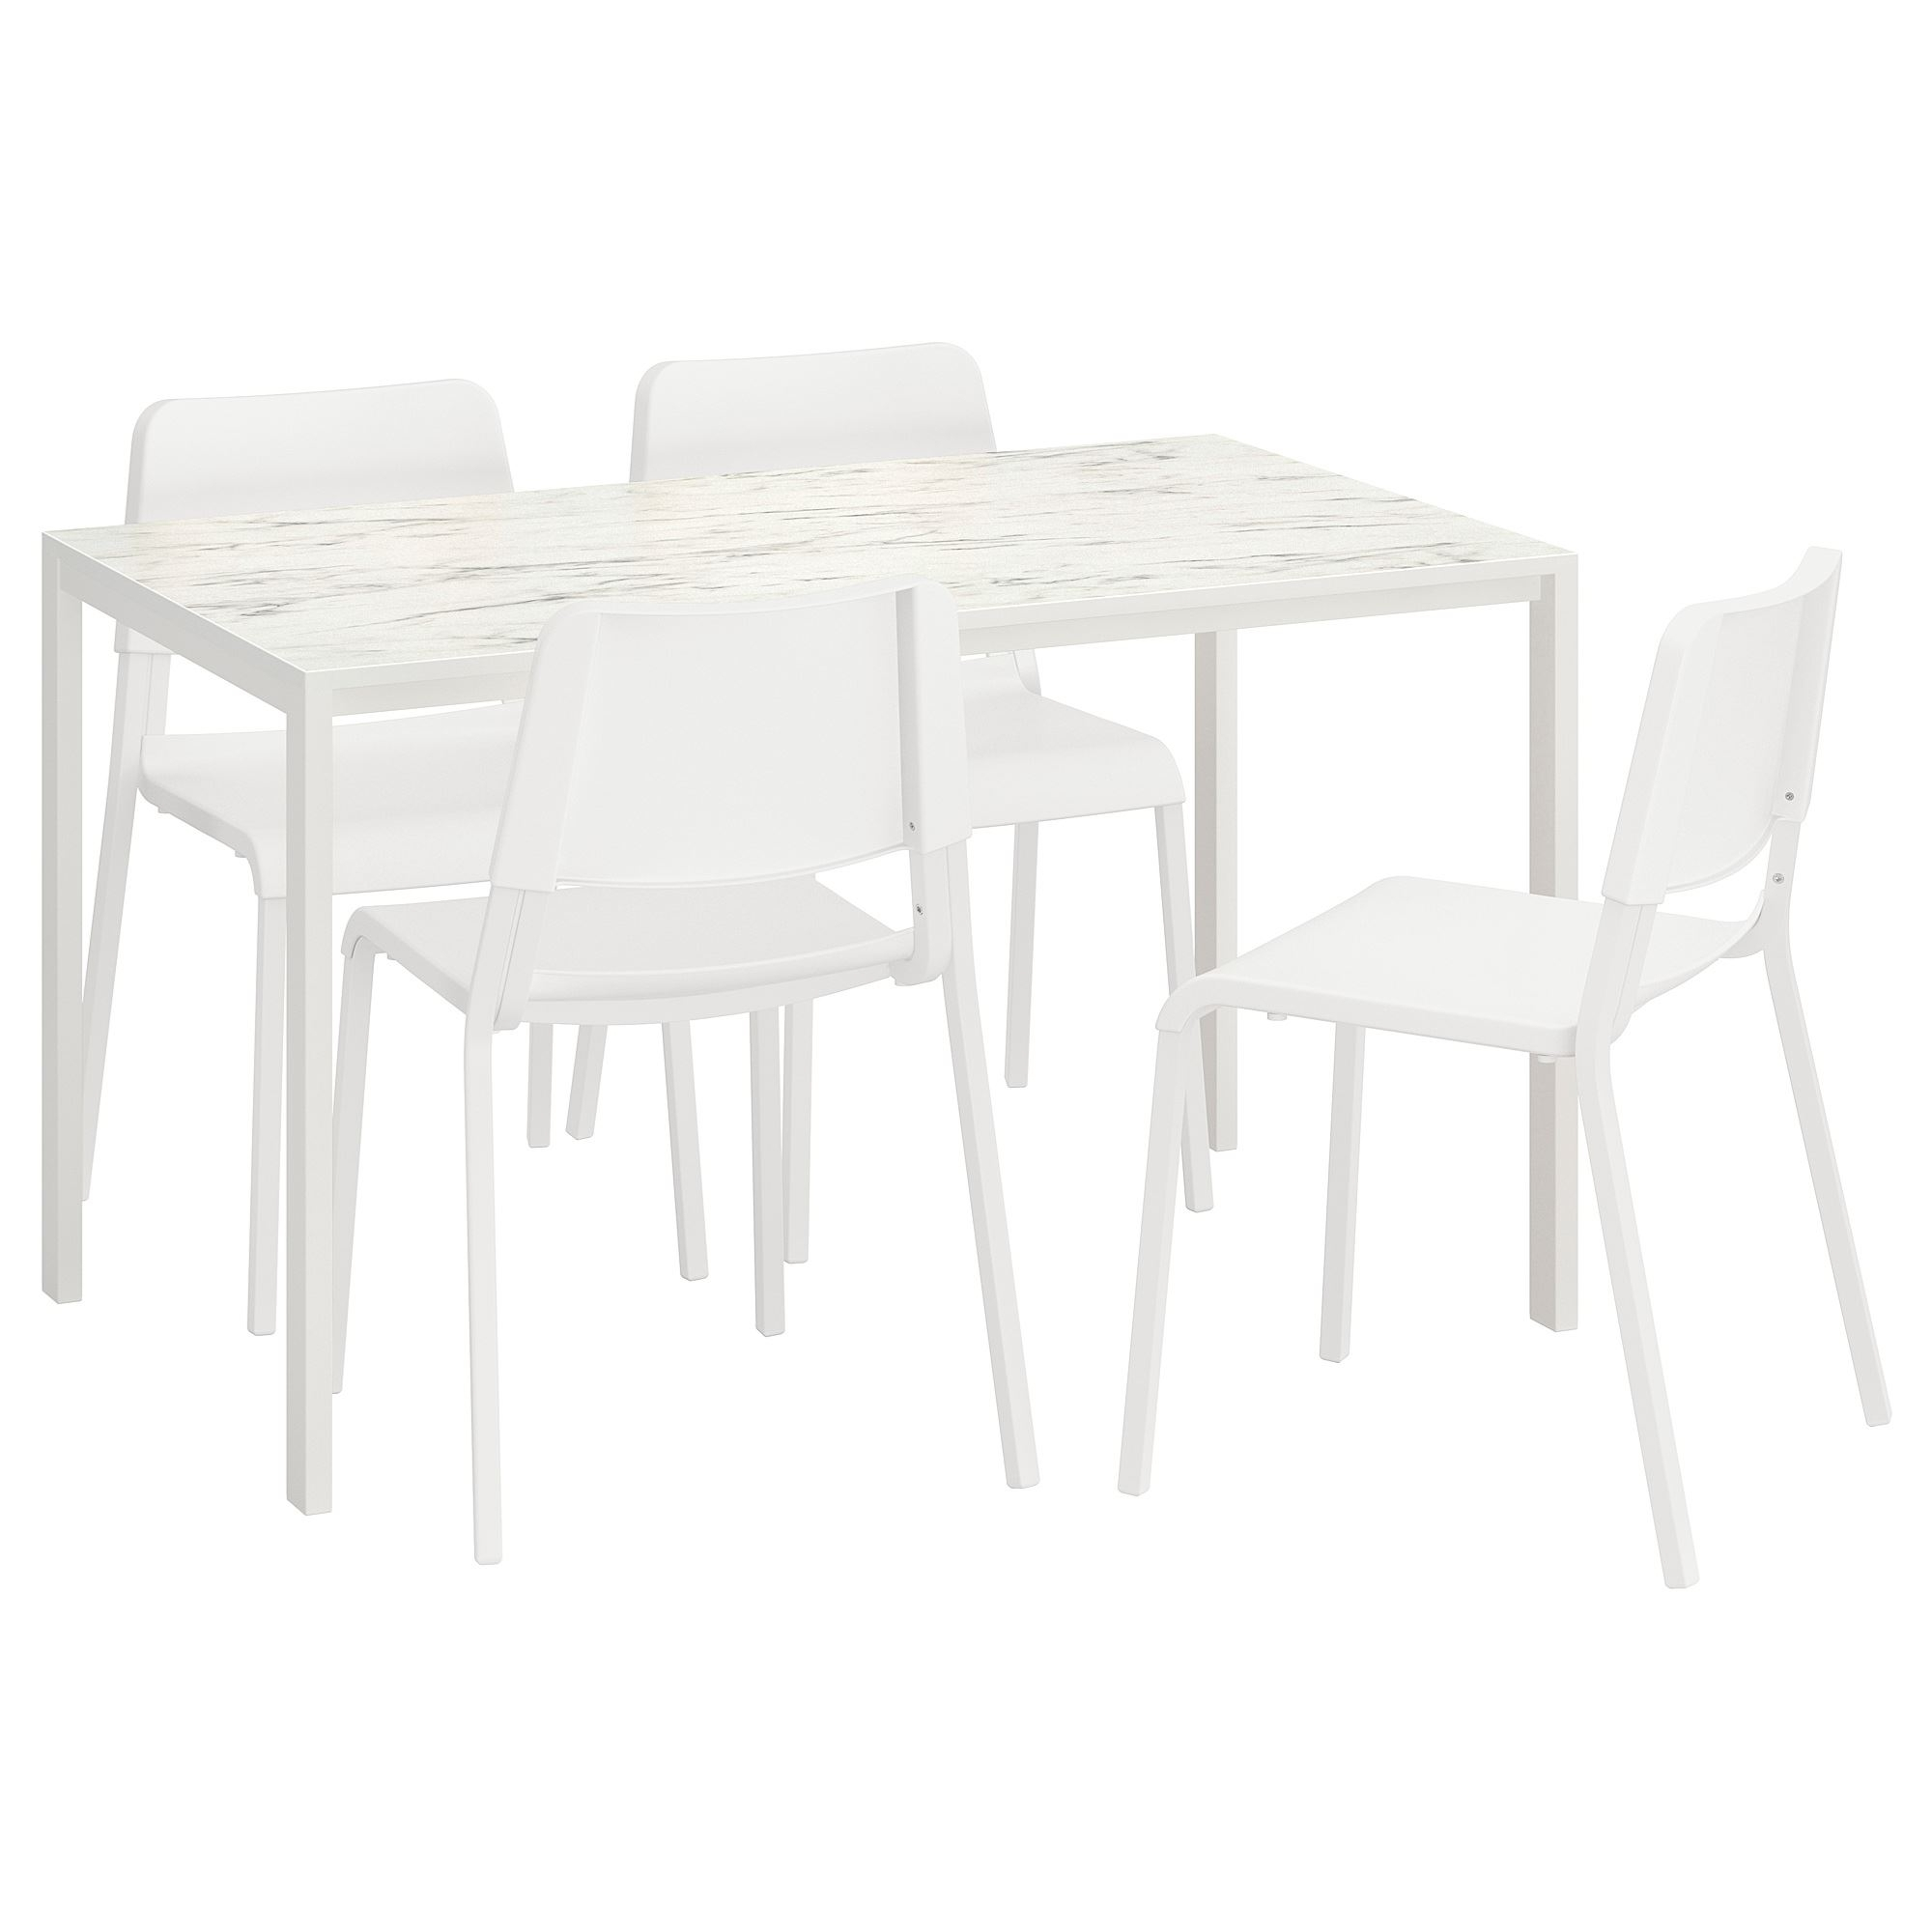 Marble Effect Dining Tables And Chairs Pertaining To Most Popular Melltorp/teodores Dining Table And Chairs White Marble Effect 125X75 (Gallery 22 of 25)